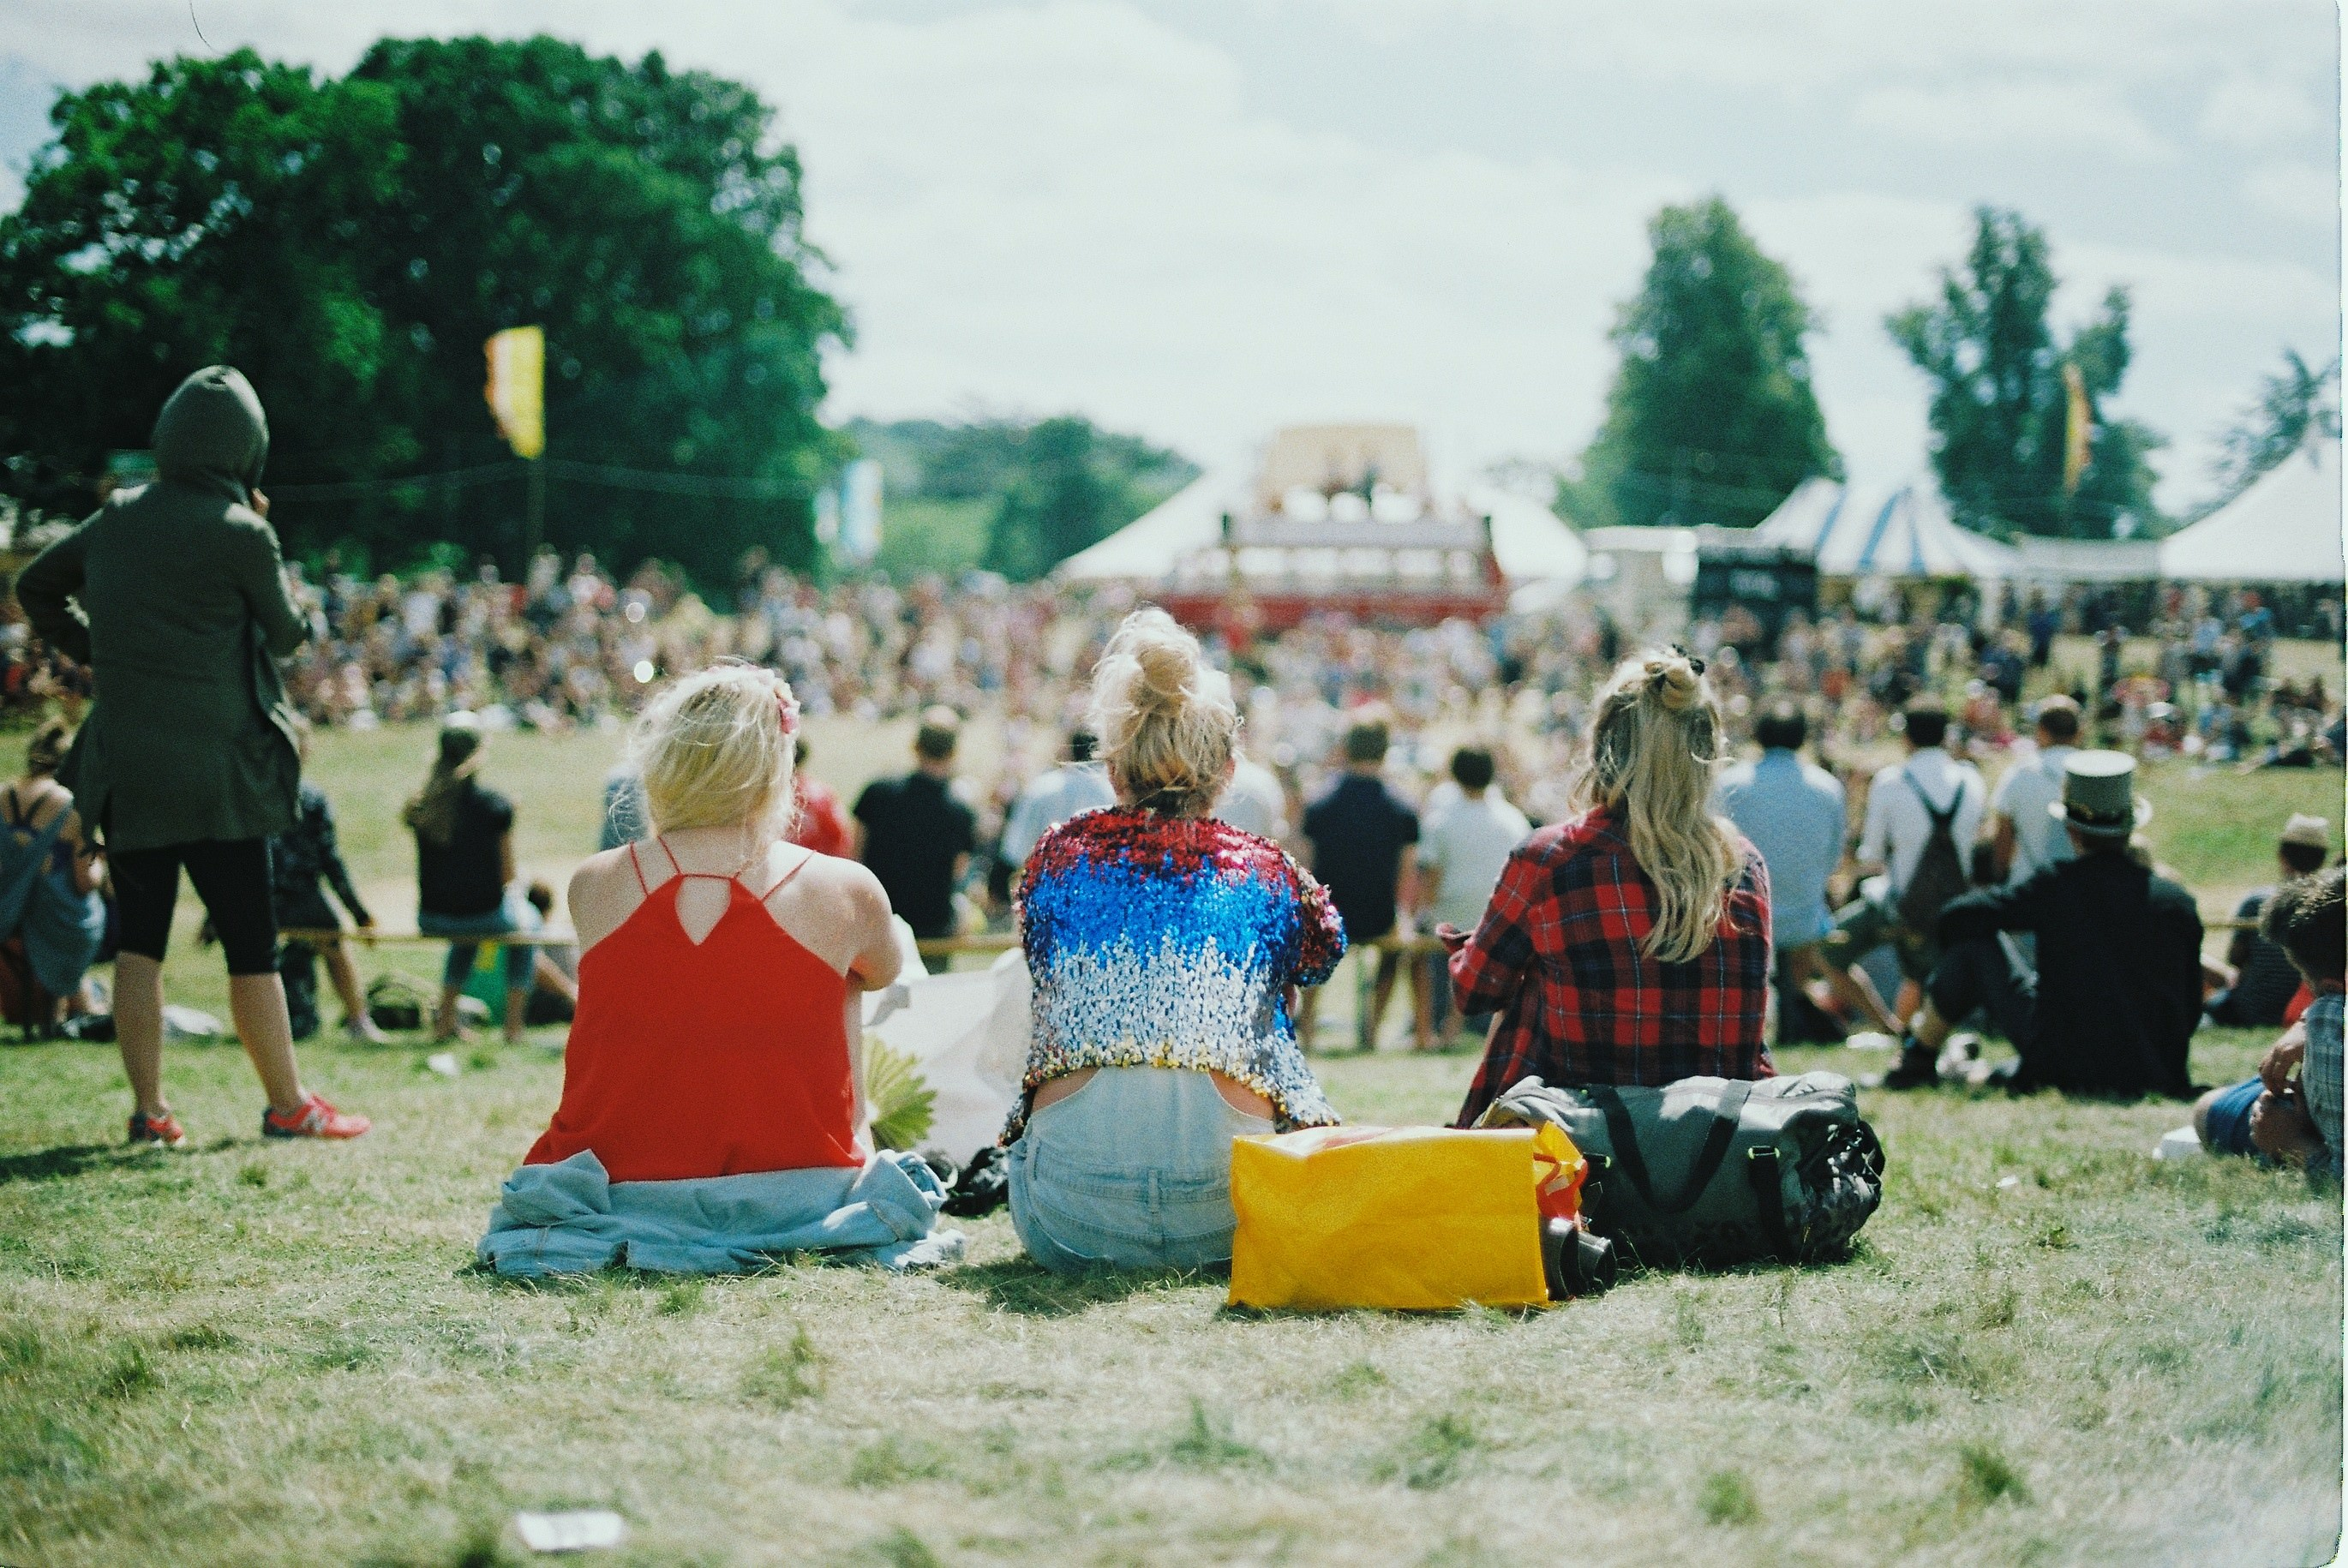 Glasto May Be Gone, but There's Plenty of UK Festival Fun to Come